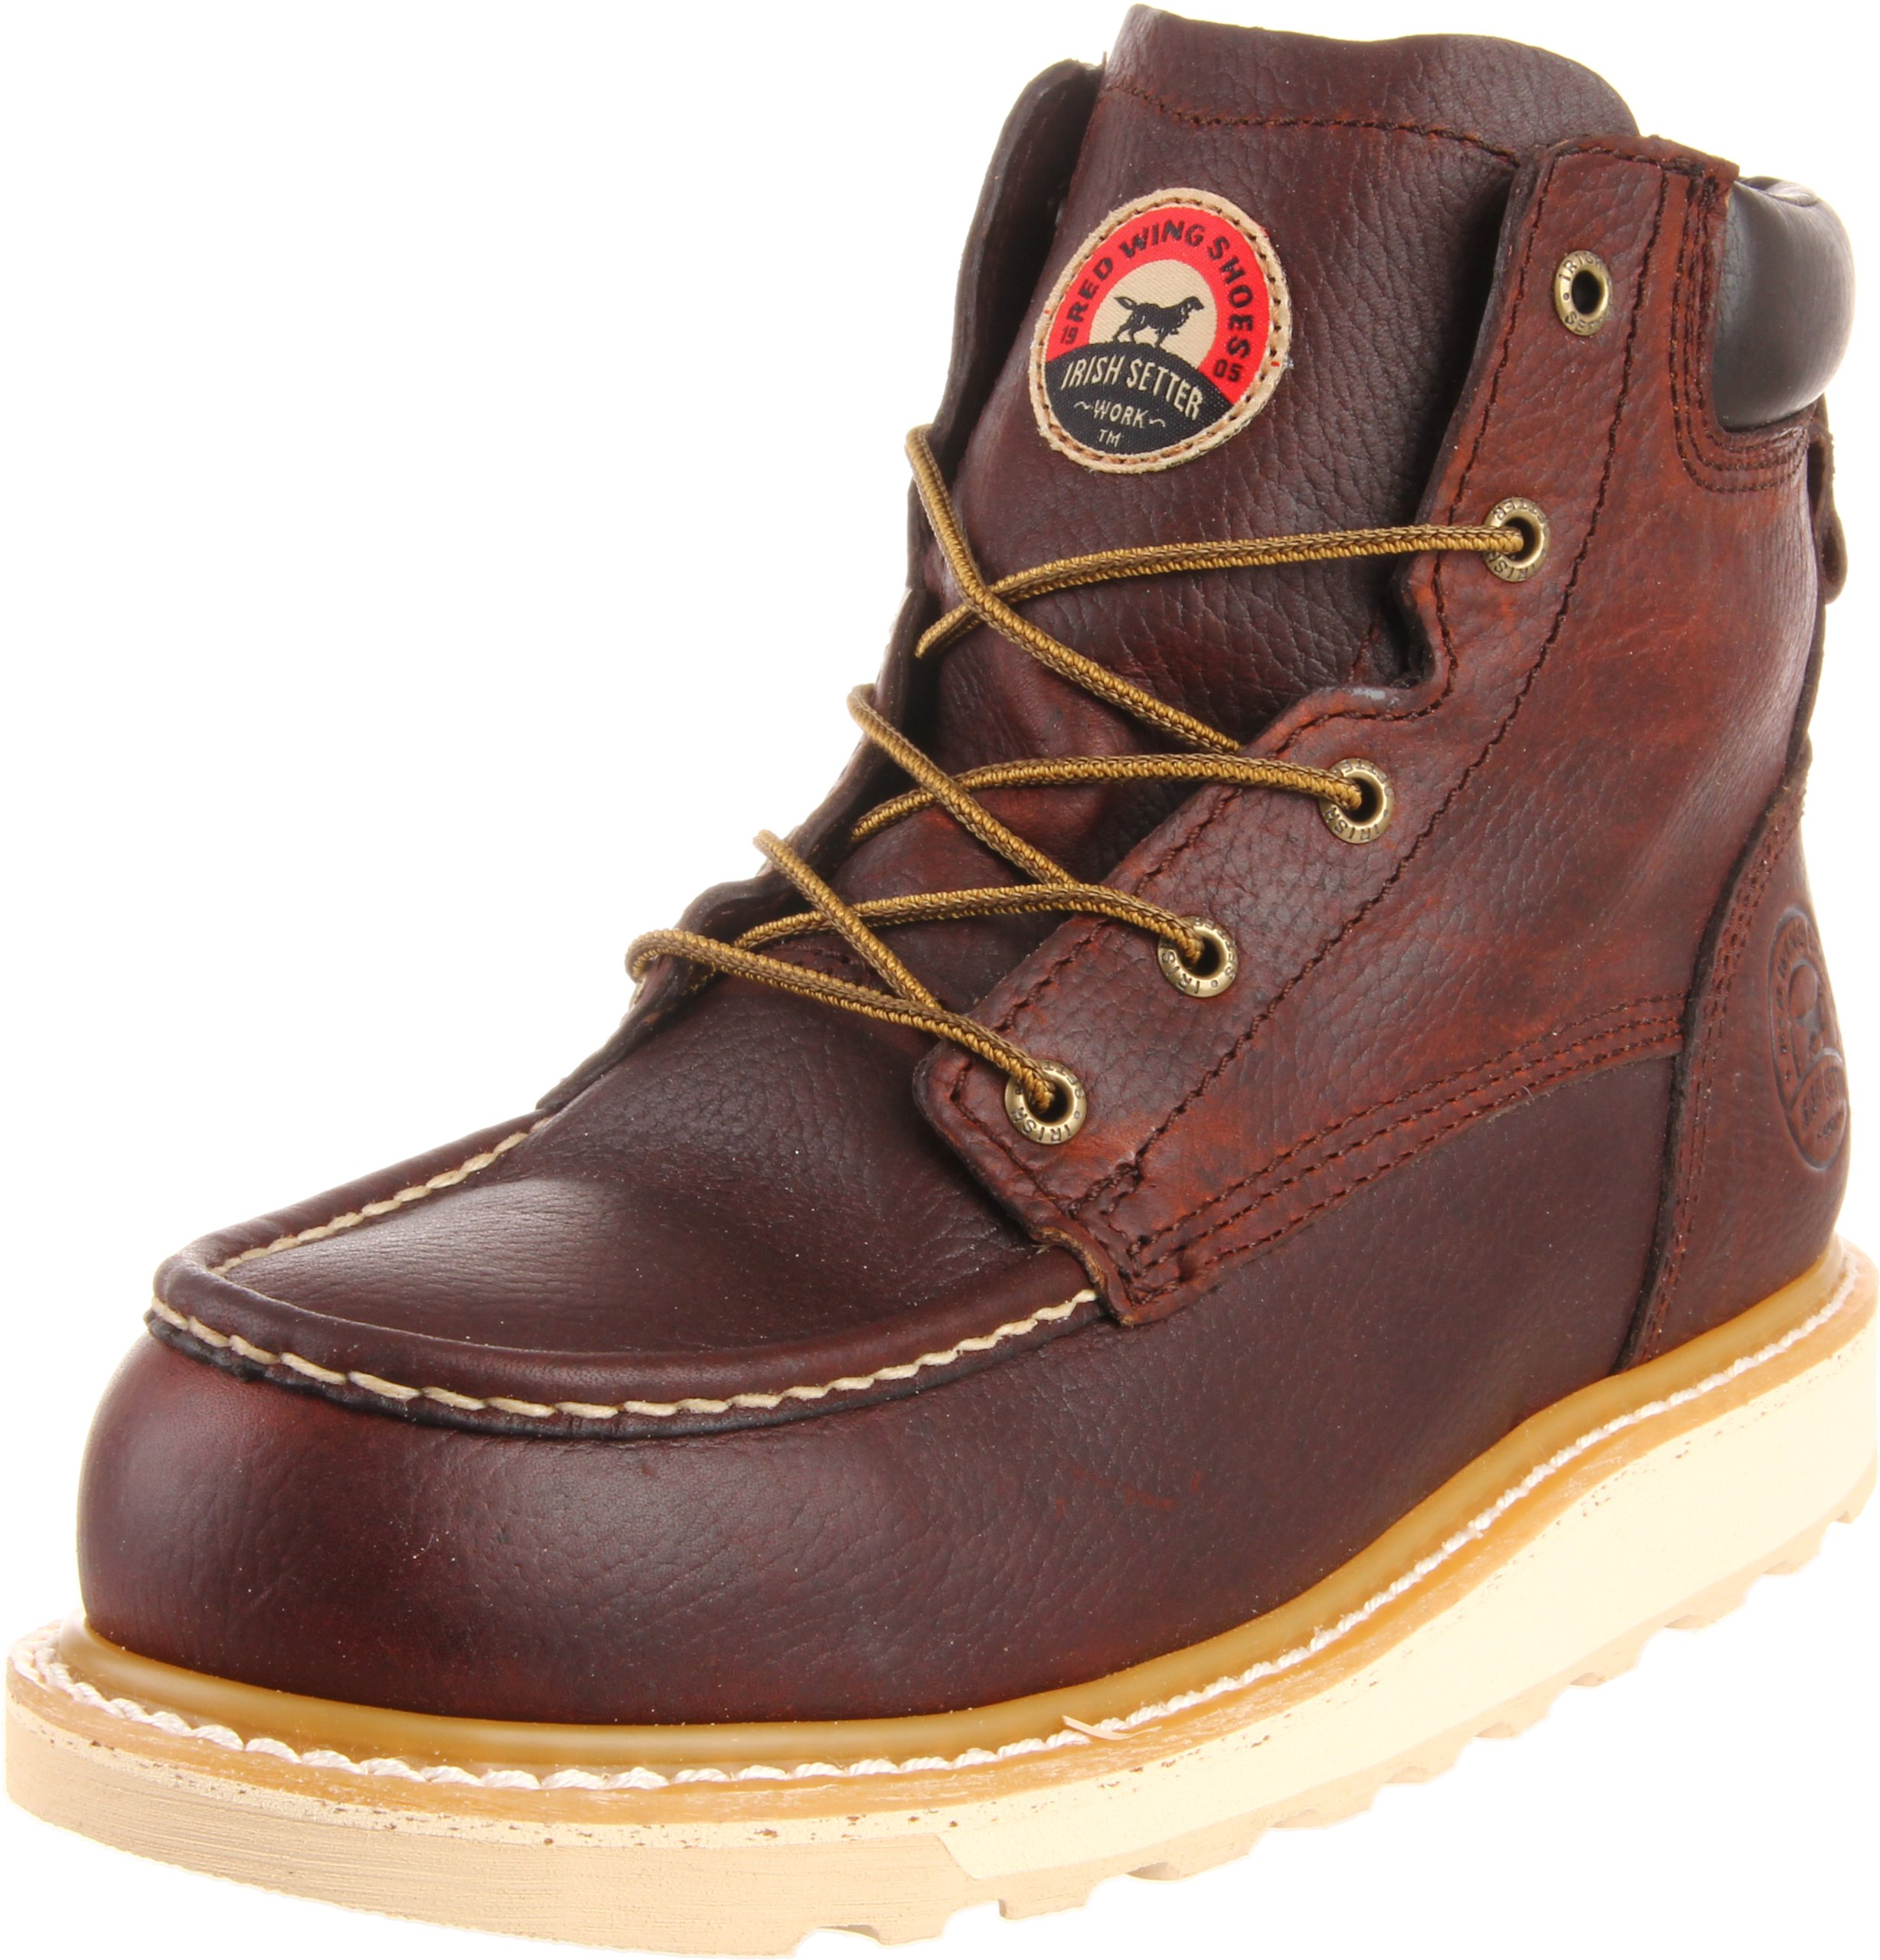 Irish Setter Men's 83606 6'' Aluminum Toe Work Boot,Brown,10 EE US